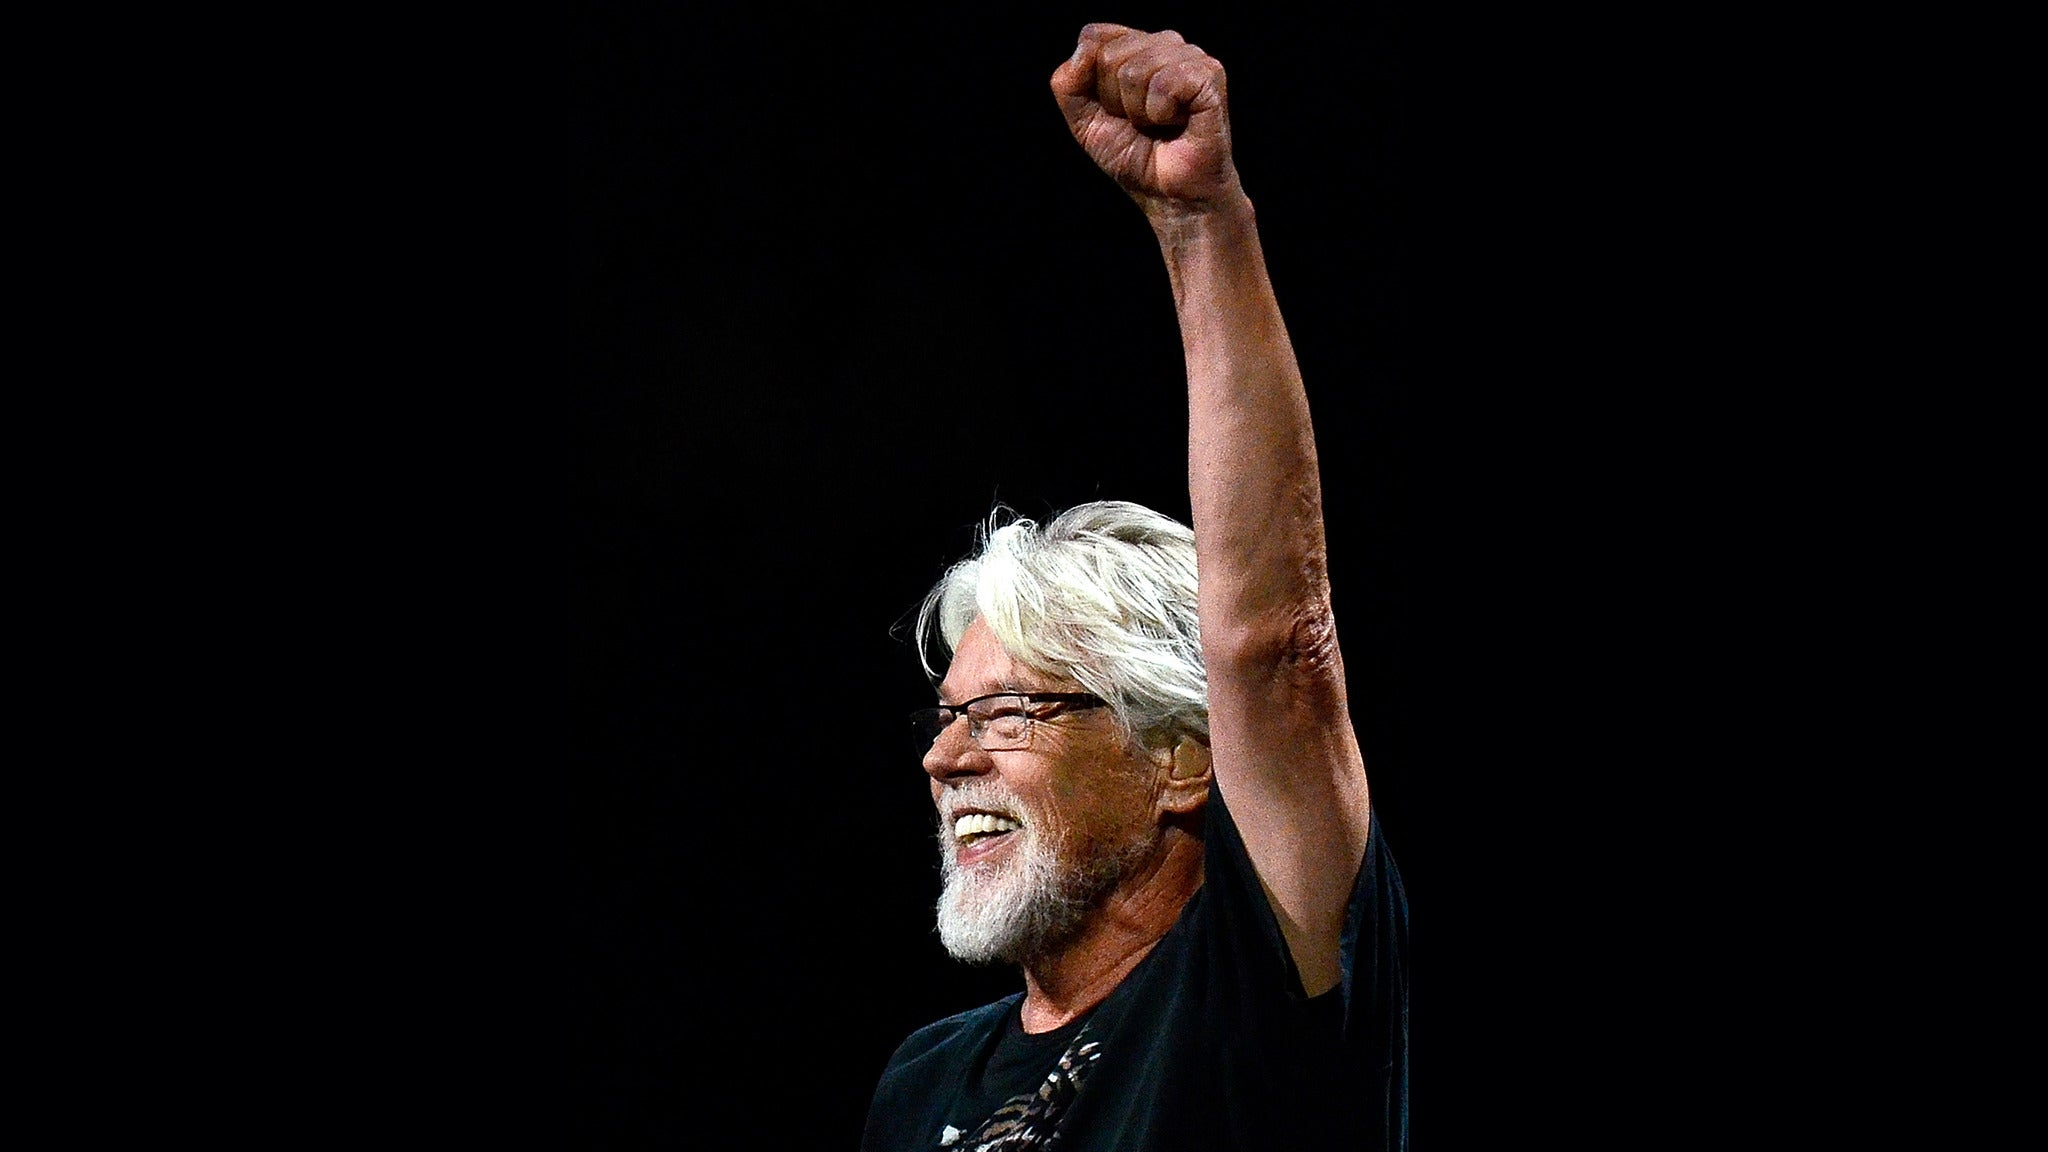 Bob Seger w/ Nancy Wilson at Wells Fargo Arena - Des Moines